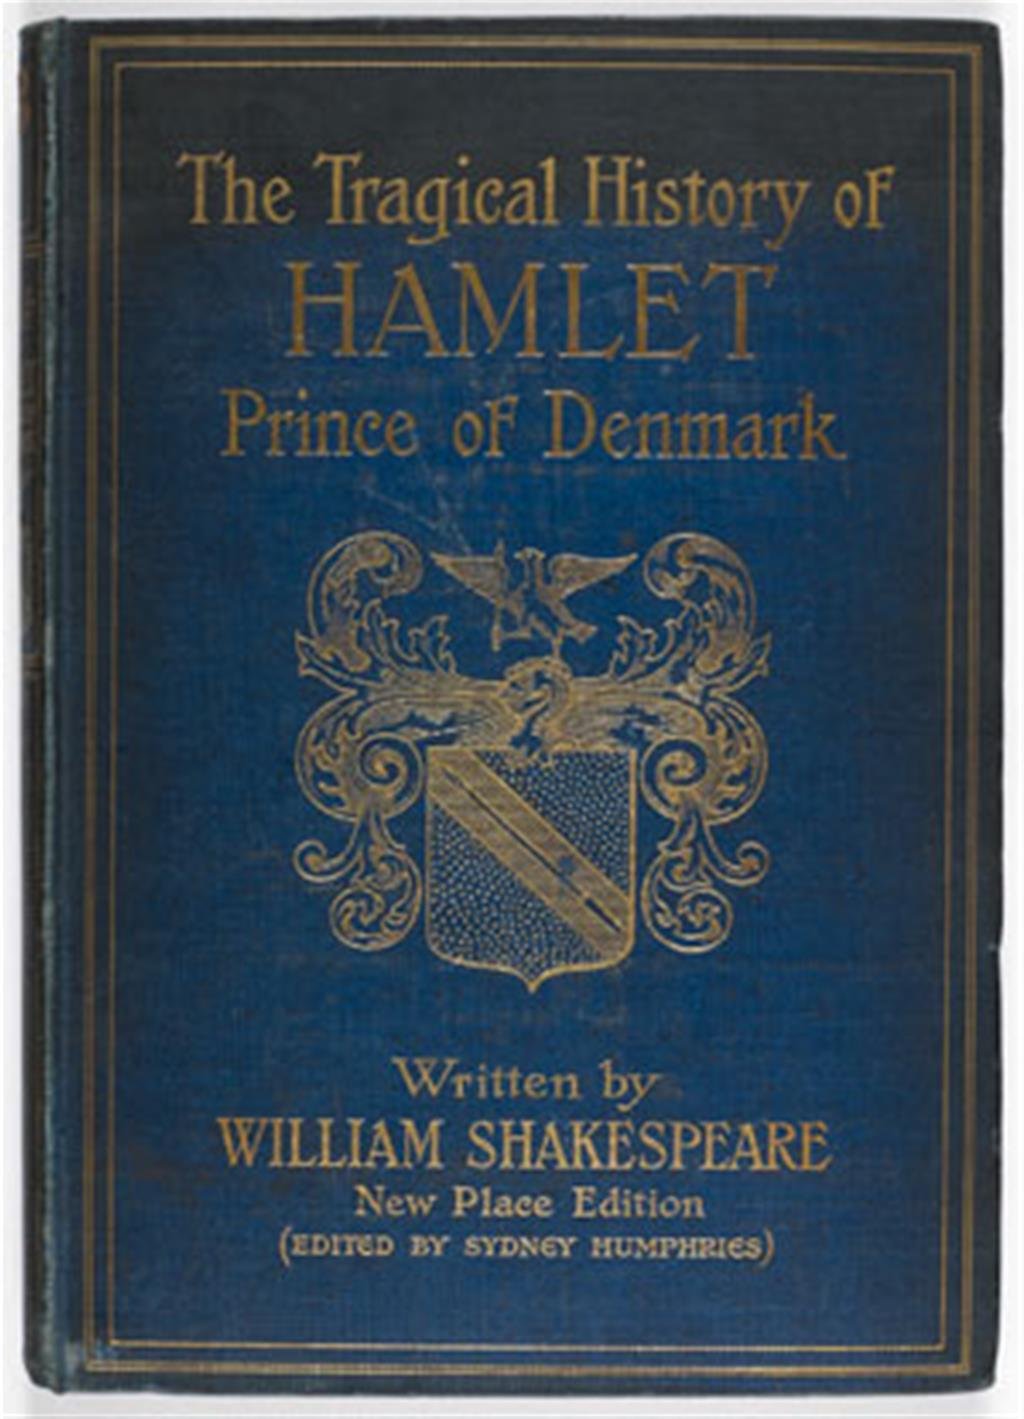 an analysis of real tragedy in hamlet by william shakespeare Plot overview on a dark winter night, a ghost walks the ramparts of elsinore castle in denmark discovered first by a pair of watchmen, then by the scholar horatio, the ghost resembles the recently deceased king hamlet, whose brother claudius has inherited the throne and married the king's widow, queen gertrude.